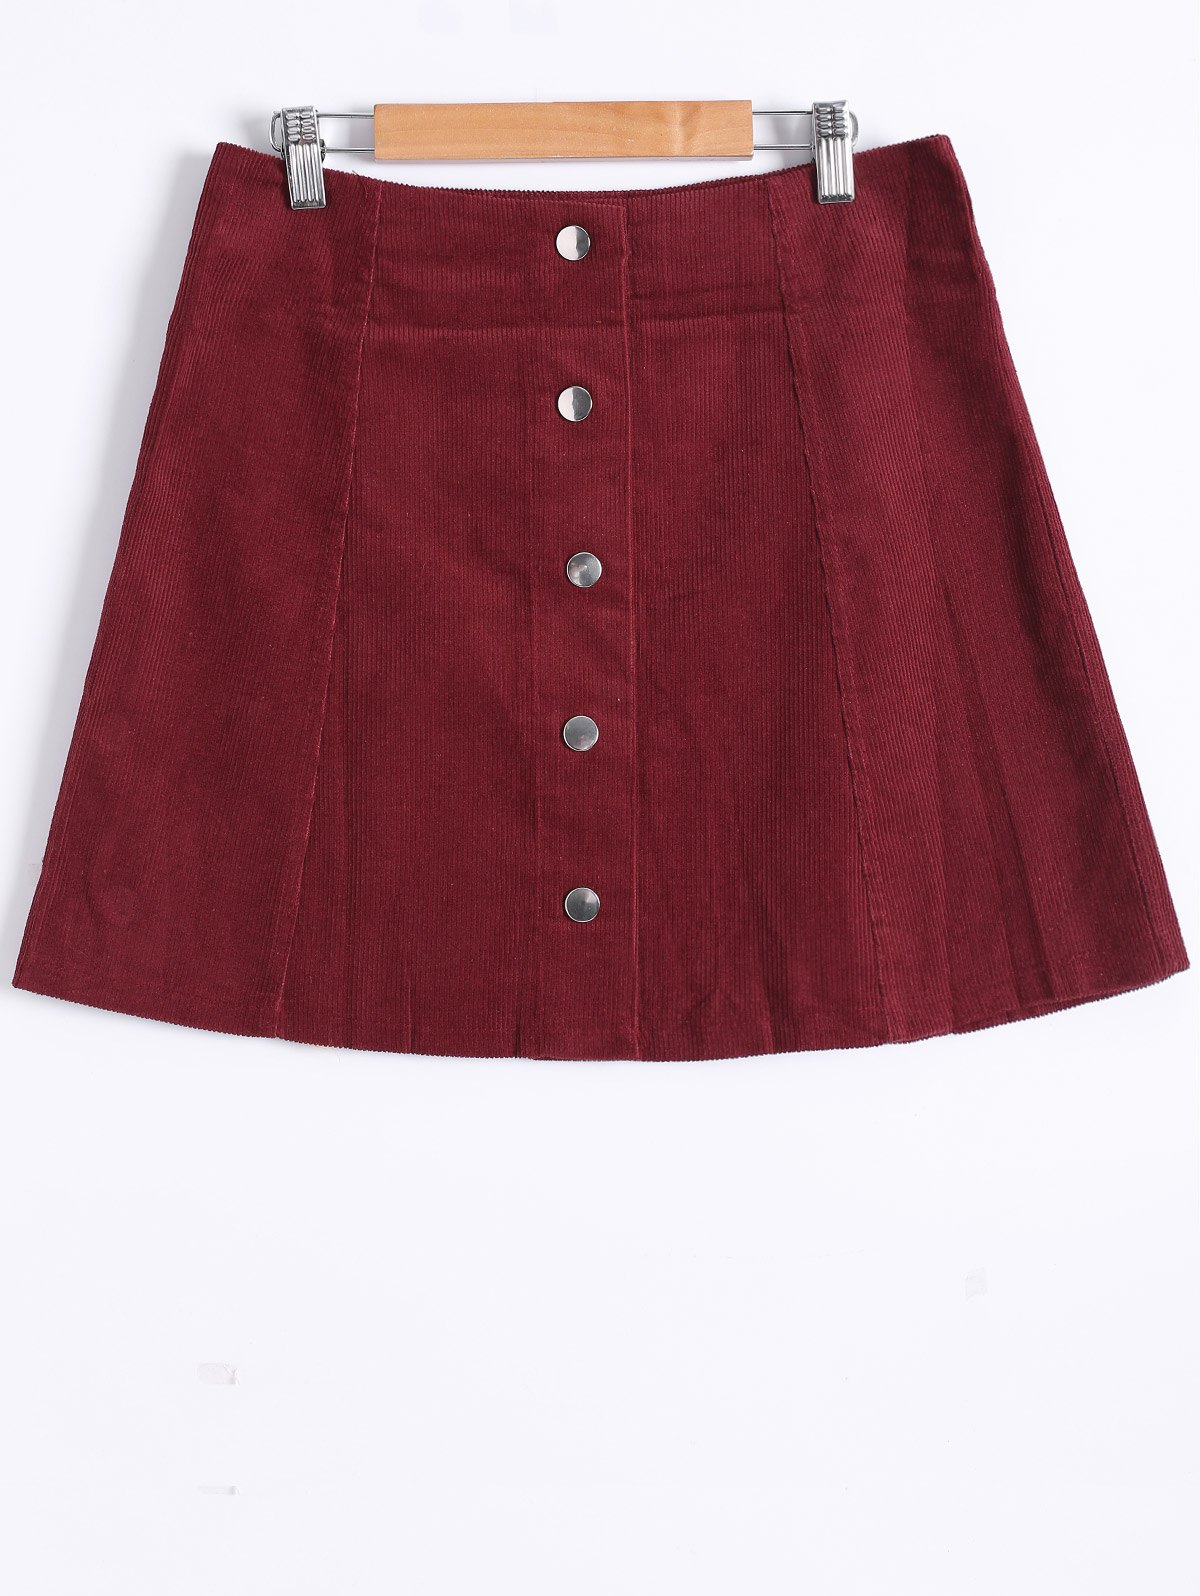 Popper Button Down A Line Skirt - WINE RED XL